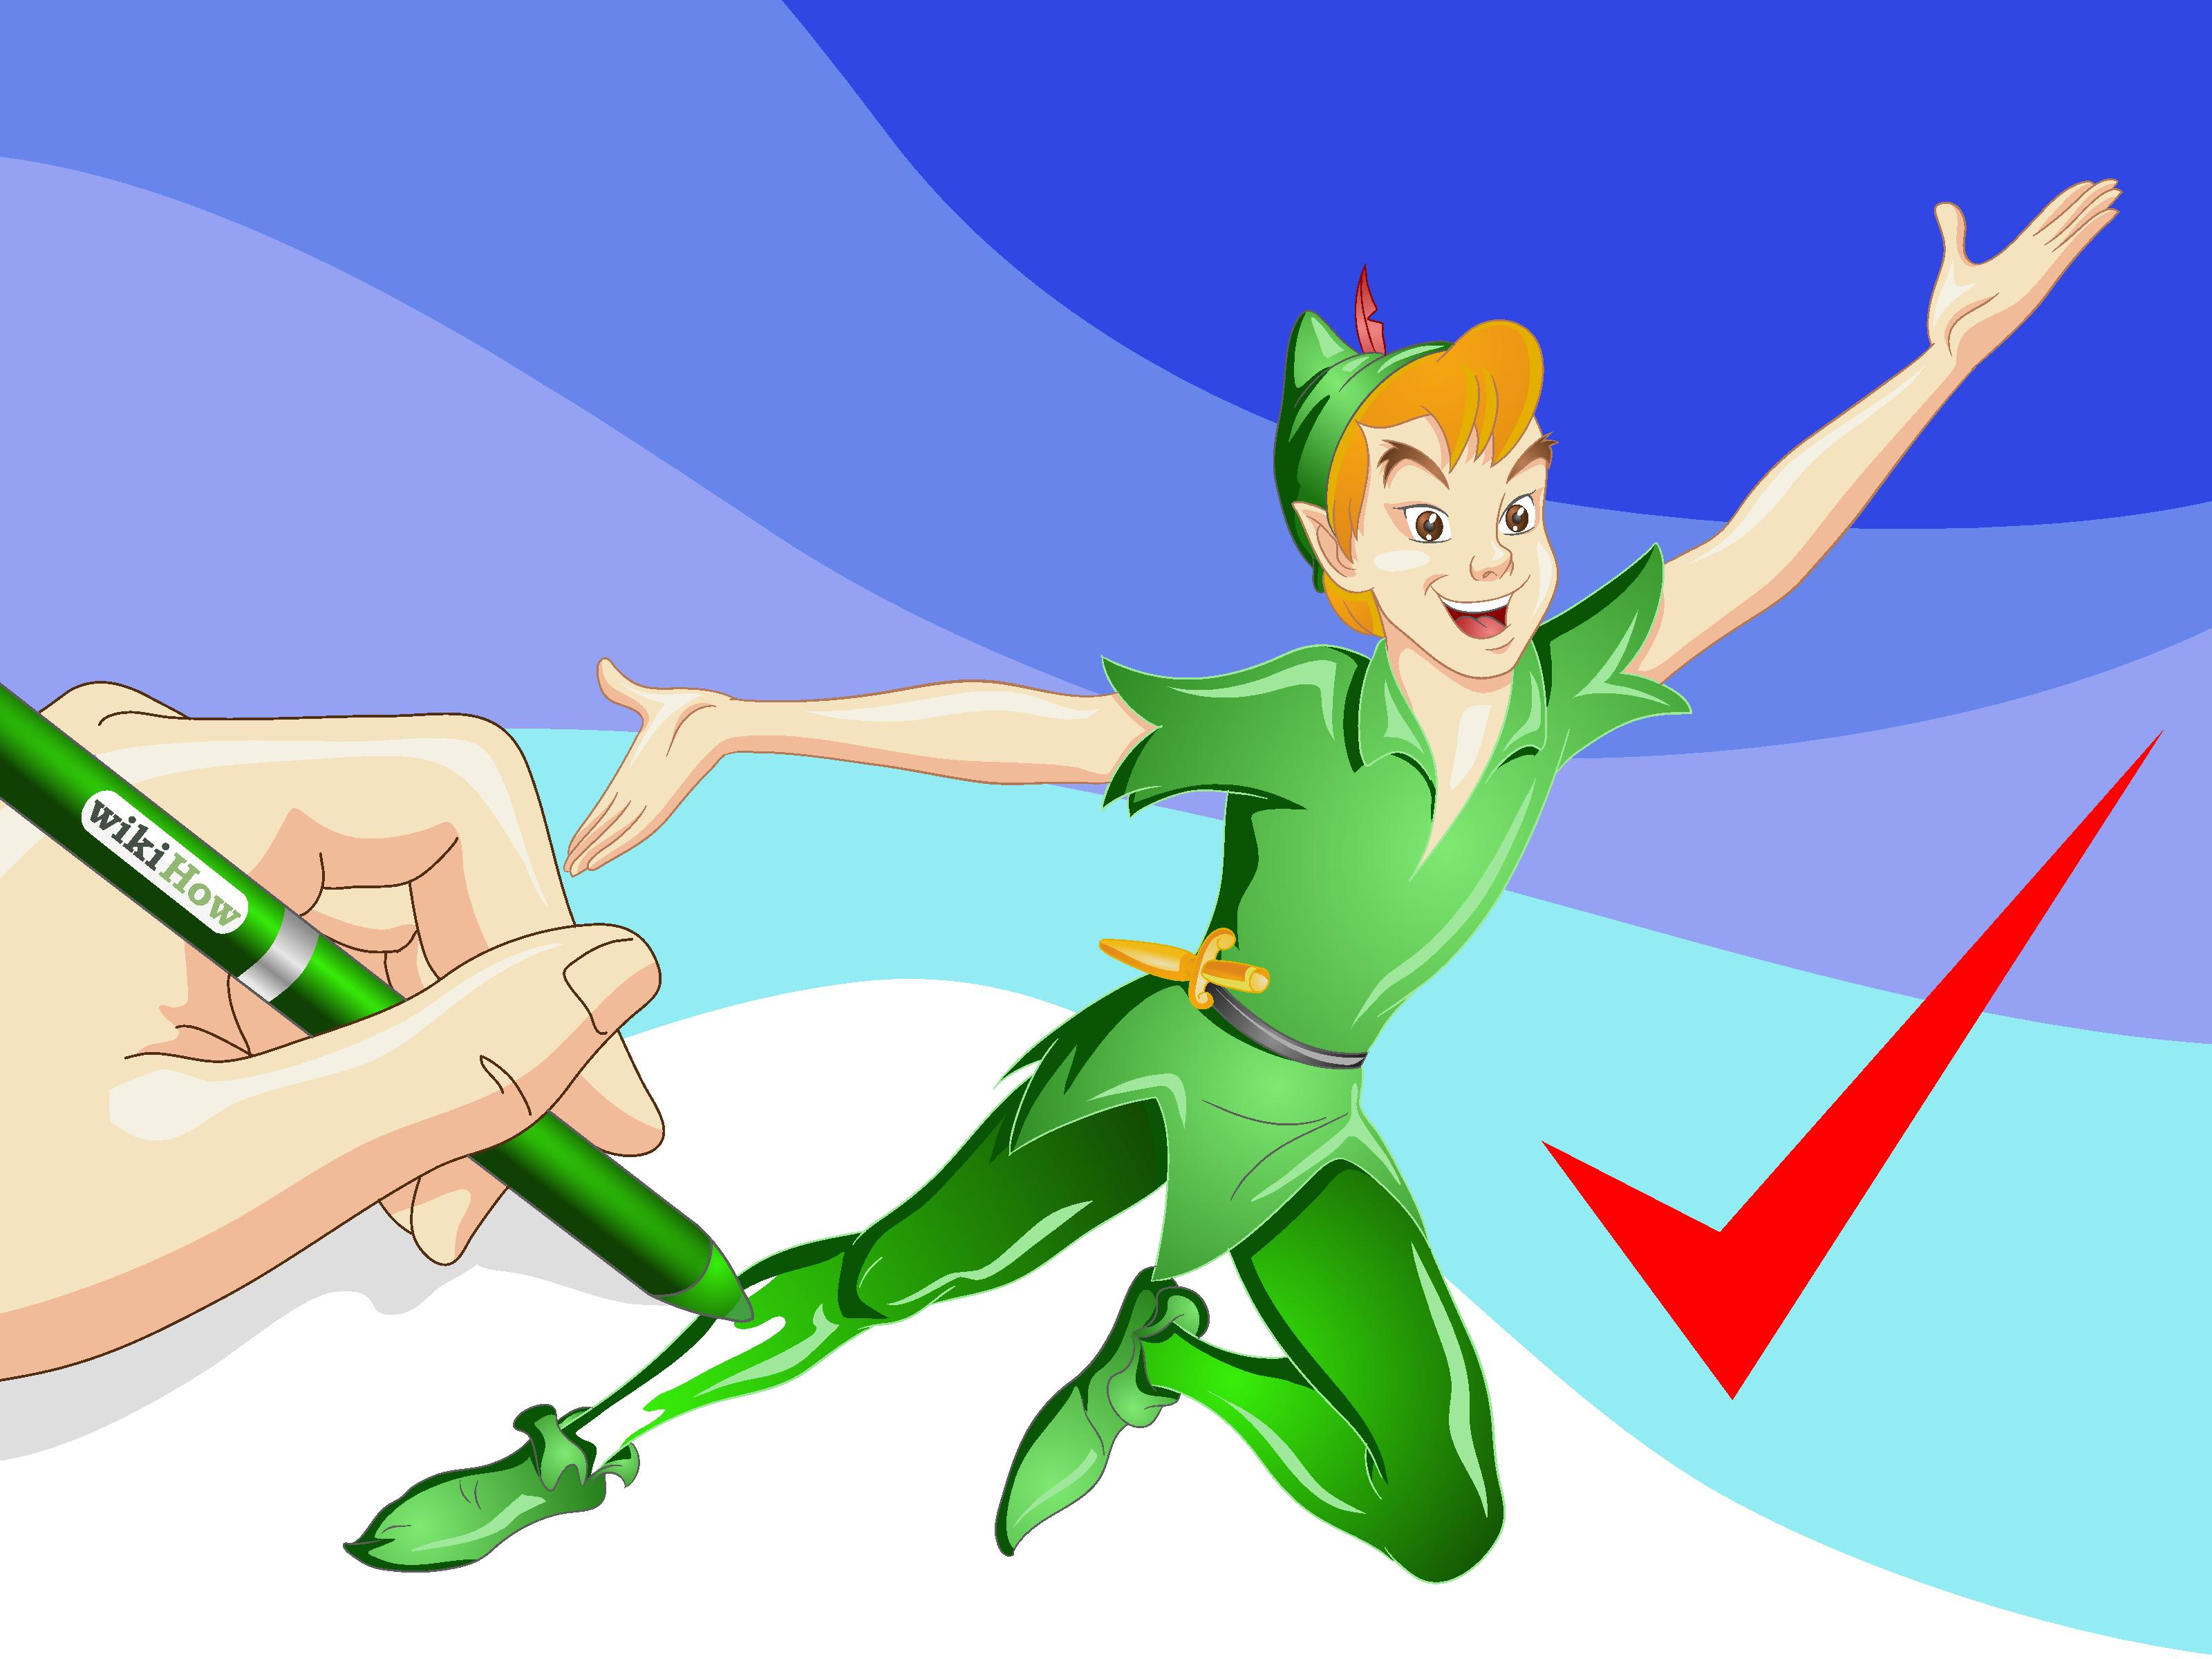 3200x2400 peter pan sketch drawing and how to draw peter pan steps